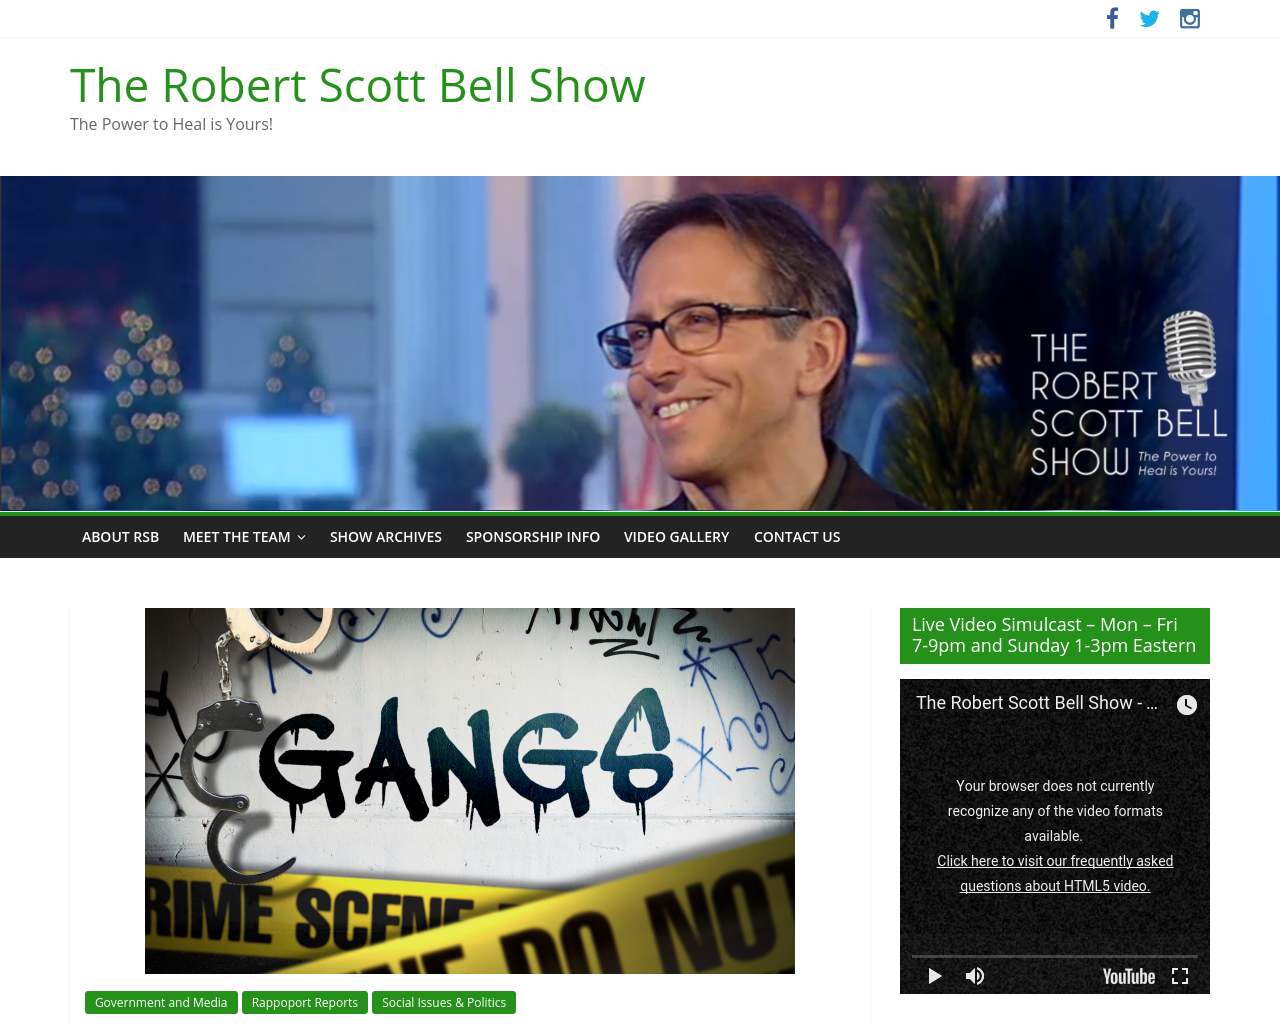 The-Robert-Scott-Bell-Show-Advertising-Reviews-Pricing